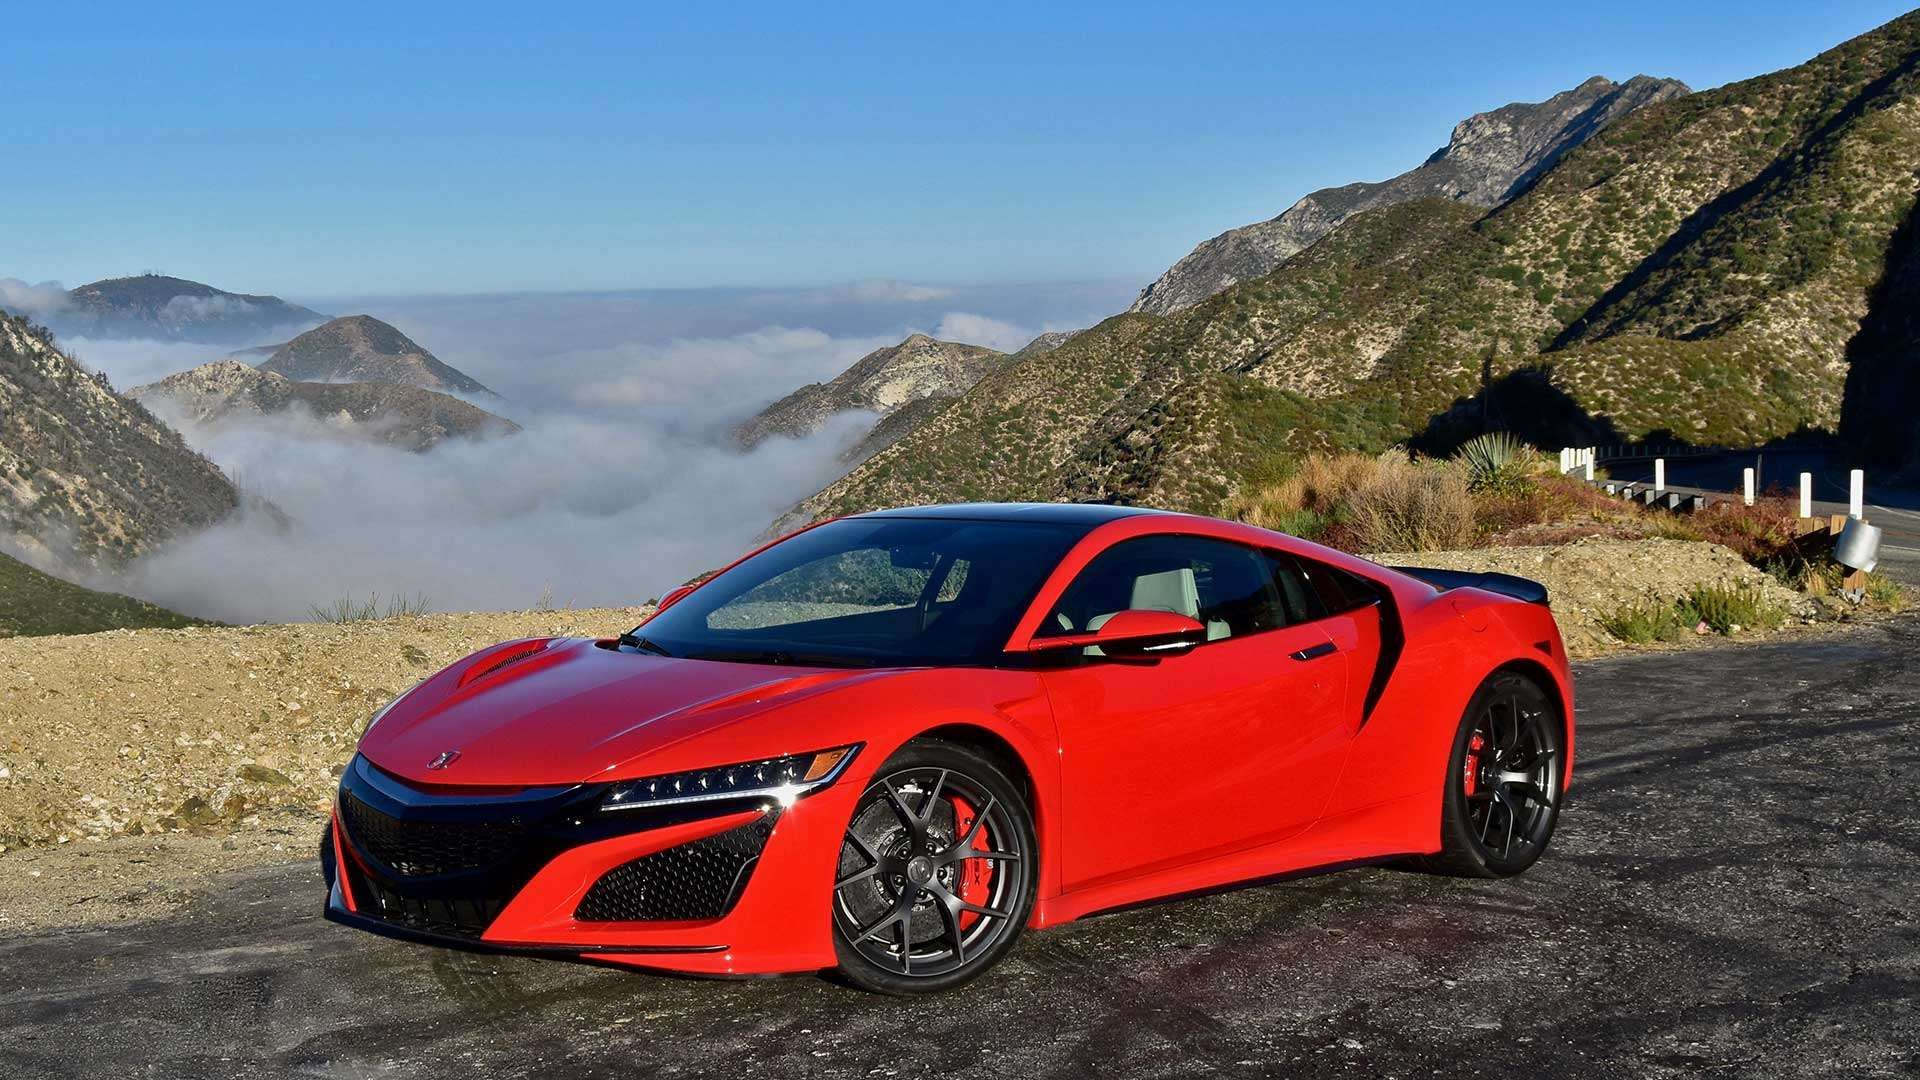 Honda S Hybrid Supercar Takes A Writer On Her First Solo Drive Up Southern California Fabled Road